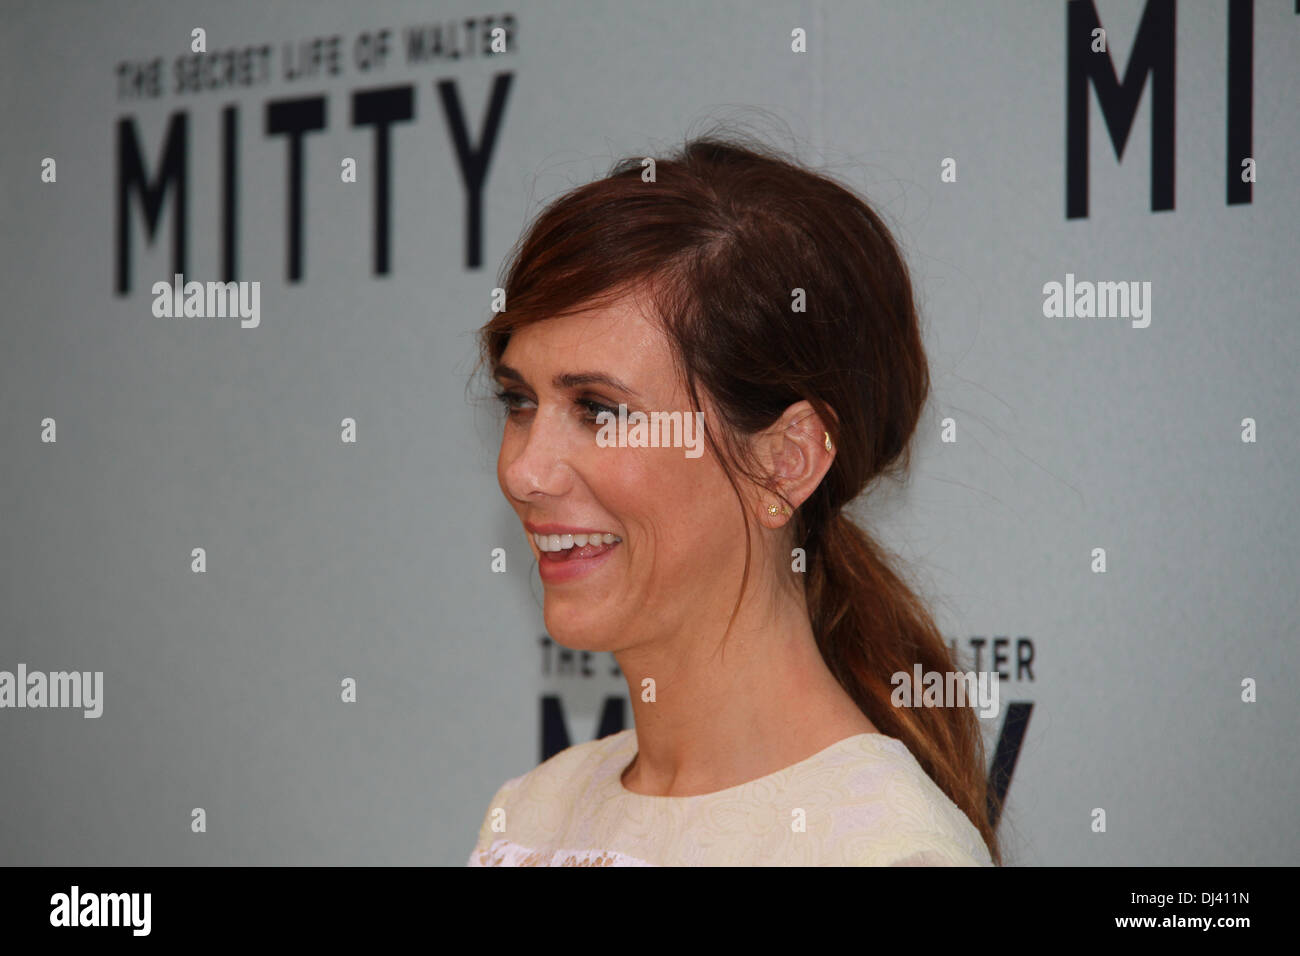 Sydney Entertainment Centre, Sydney, NSW, Australia. 21 November 2013. Ben Stiller (Zoolander, Meet The Parents) and Kristen Wiig (Bridesmaids) attended the red carpet Australian Premiere of The Secret Life of Walter Mitty. Pictured is Kristen Wiig. Copyright Credit:  2013 Richard Milnes/Alamy Live News. - Stock Image